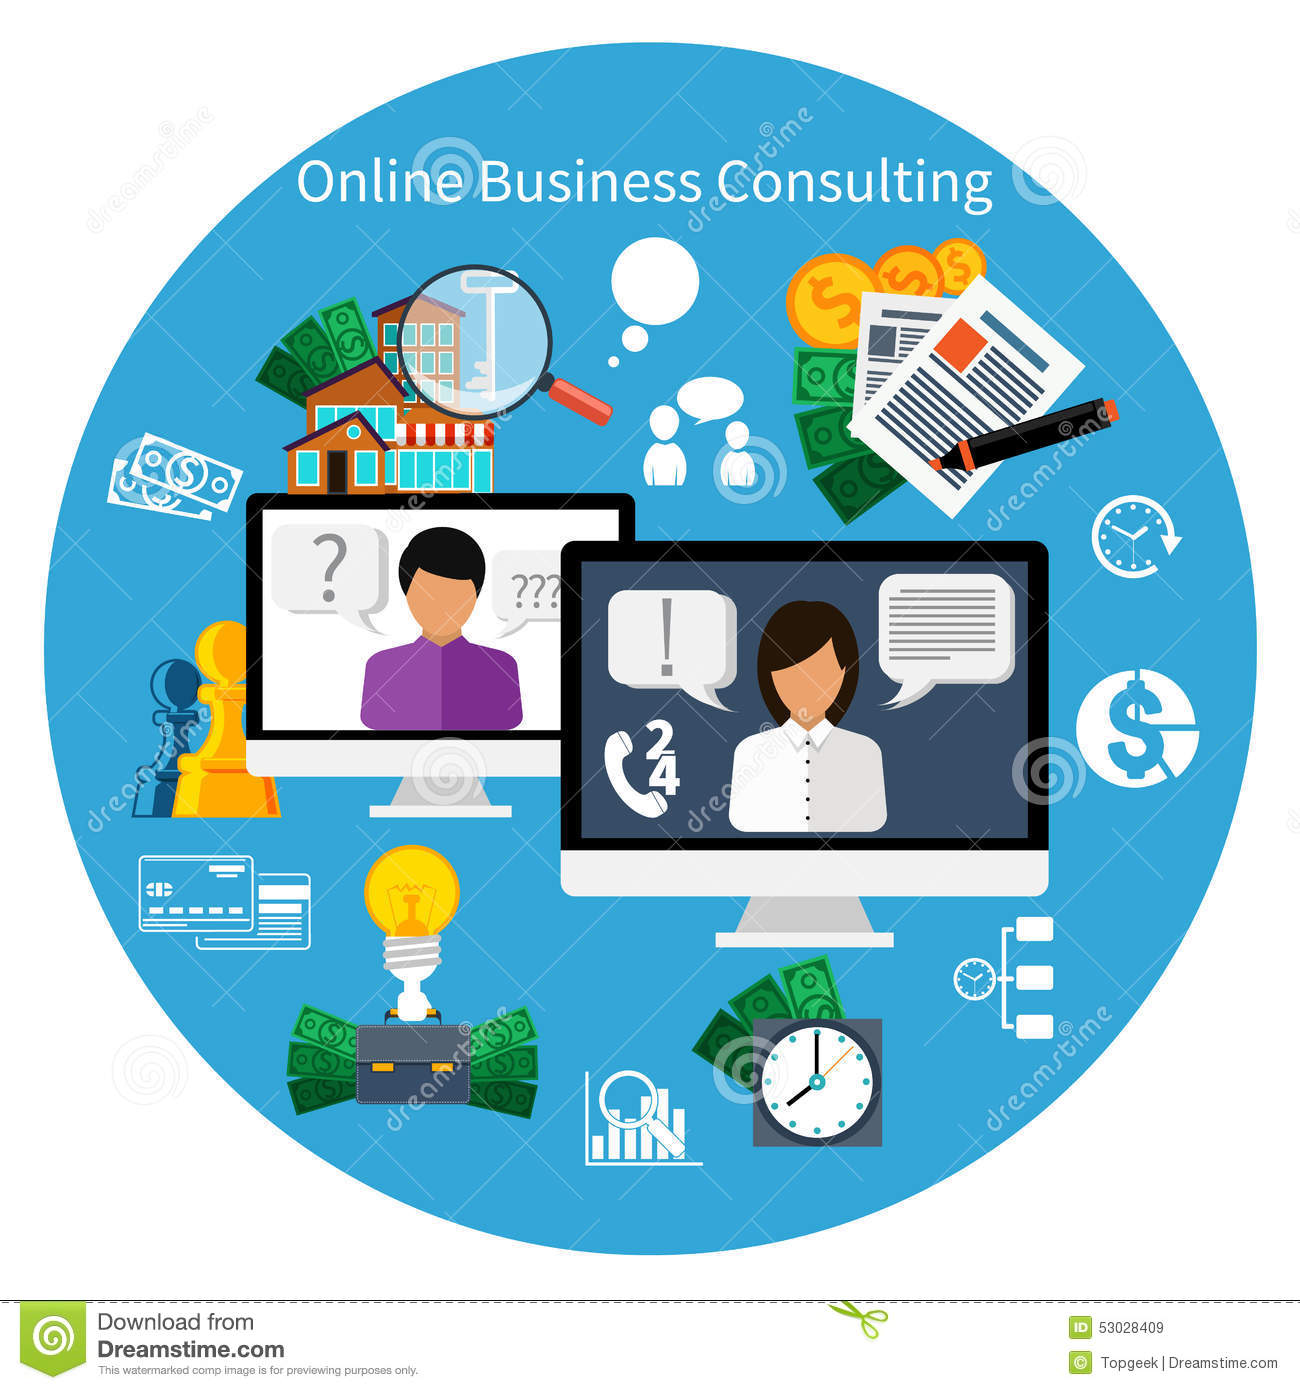 Customer online consulting service concept stock vector for Online architect services